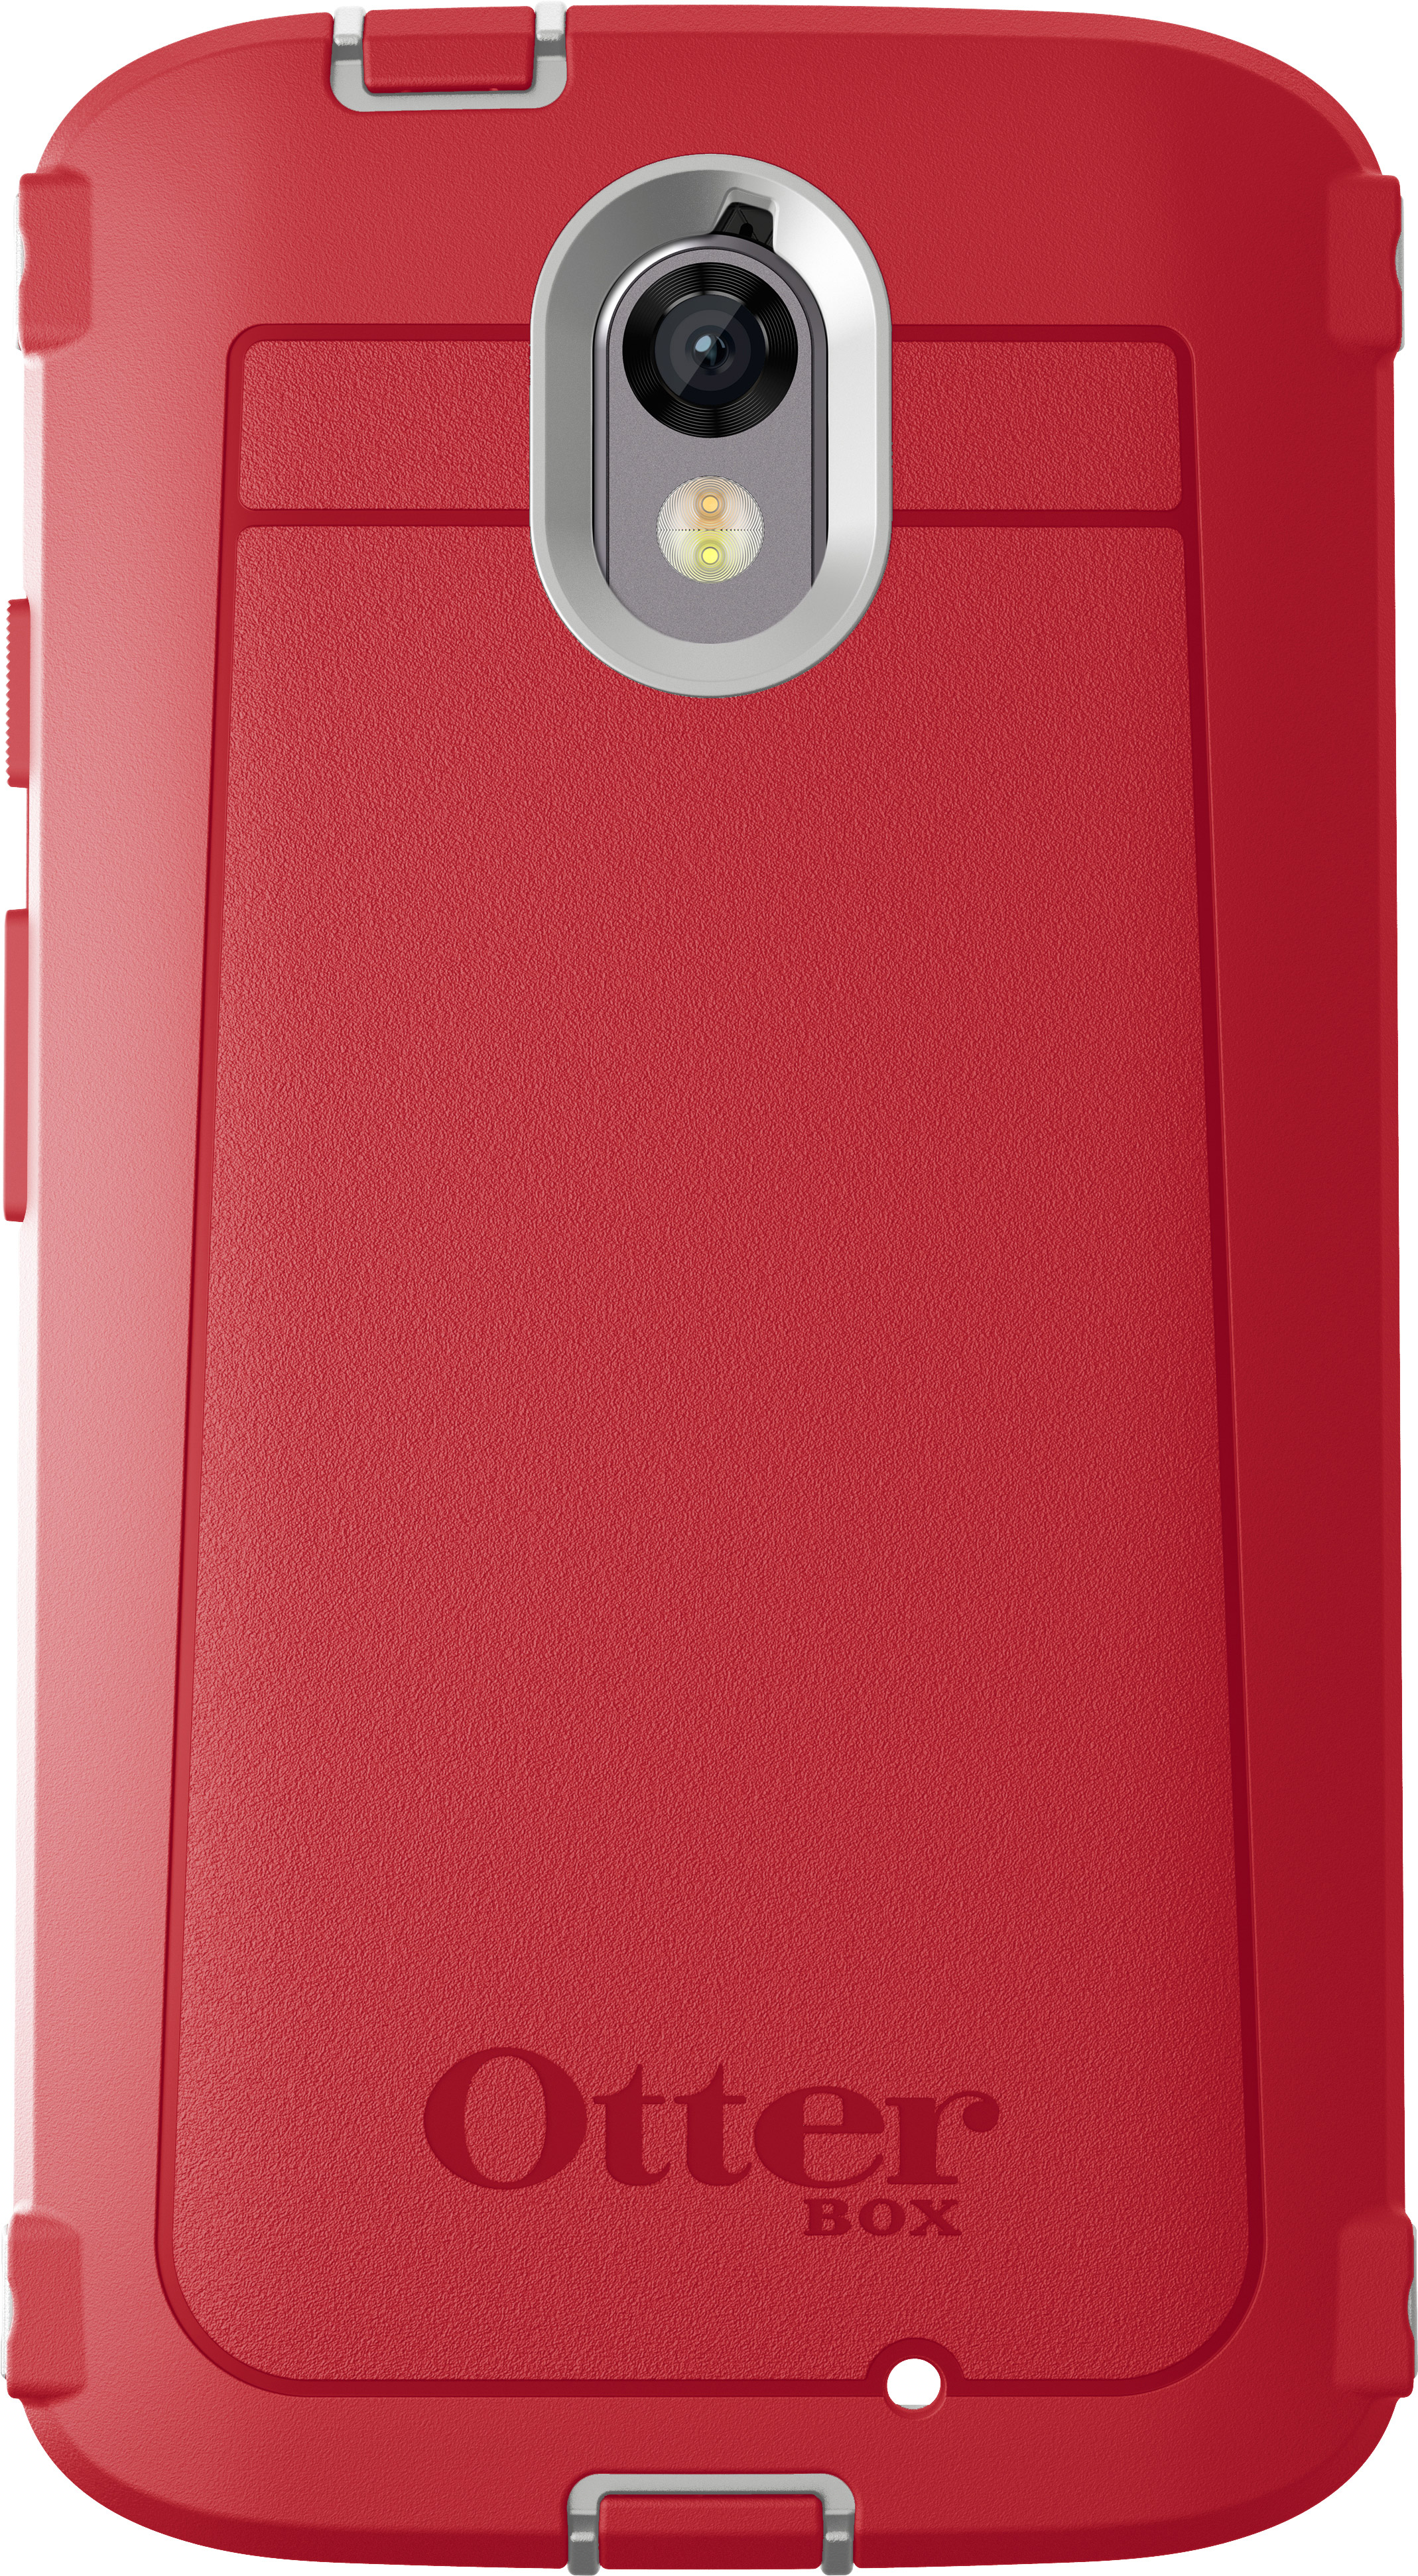 OtterBox Defender Series Case for DROID Turbo 2